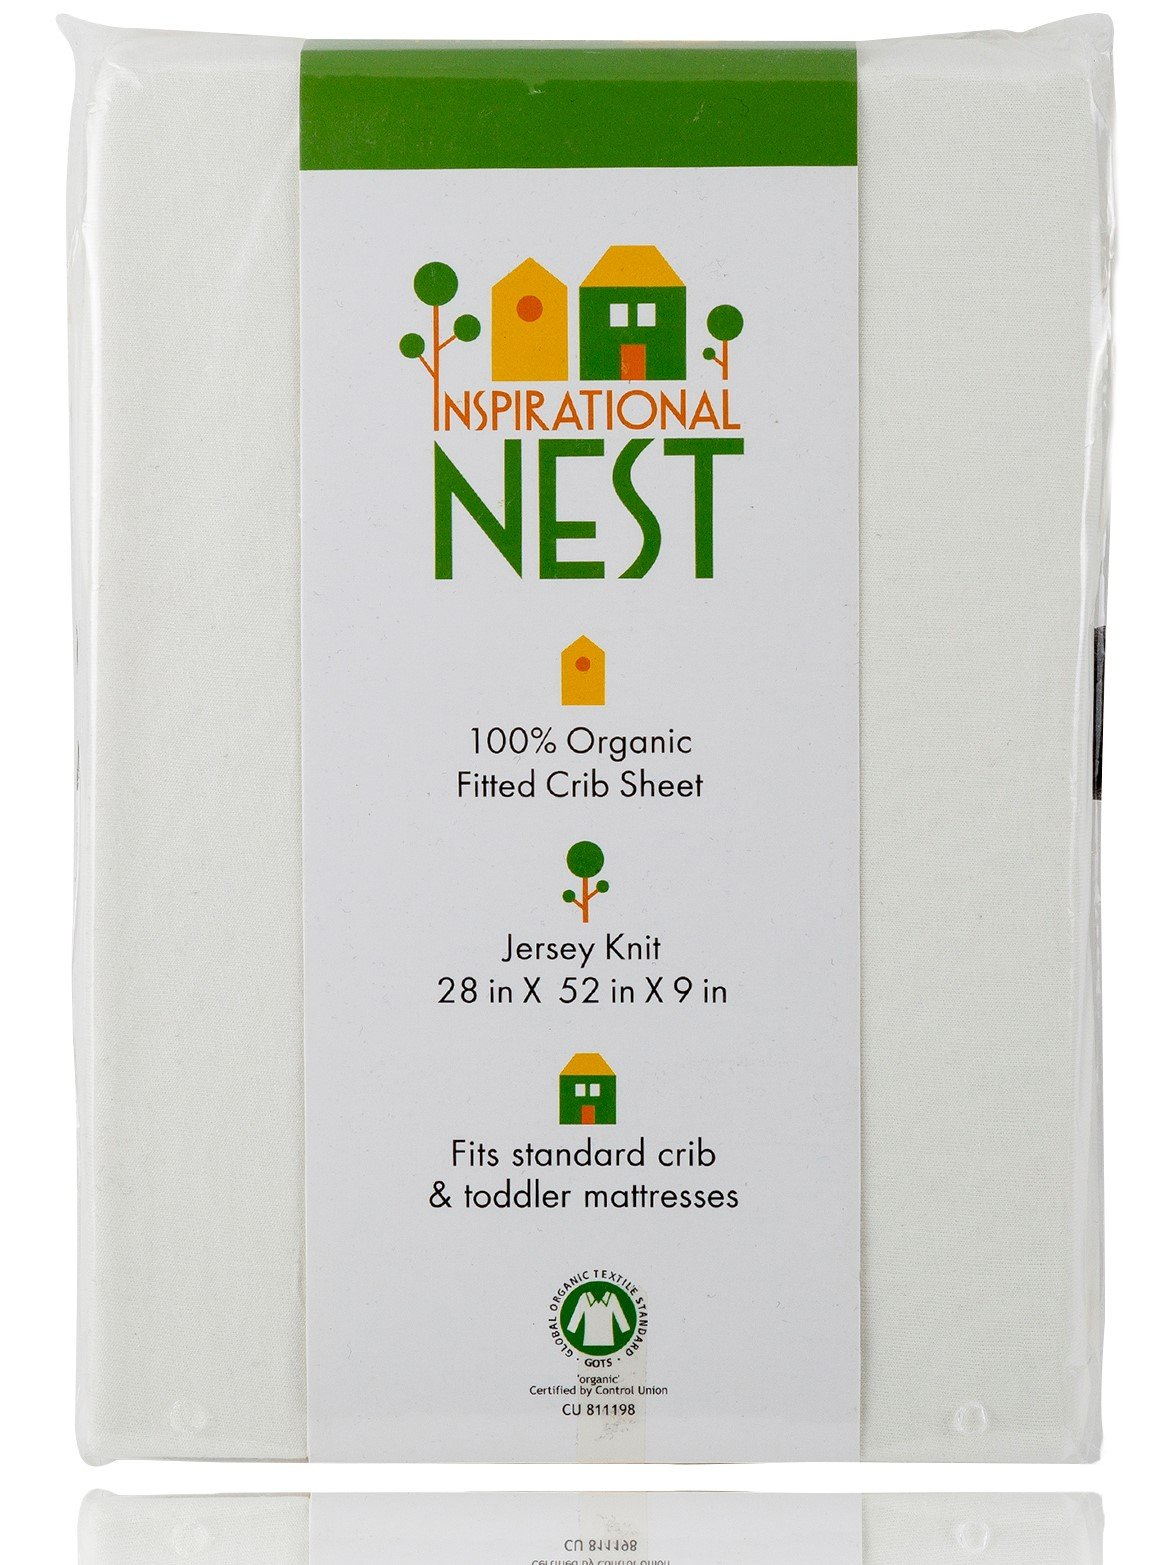 Organic Fitted Crib Sheet - GOTS Certified -100% Organic Cotton- Jersey Knit - More than Organic, Ultra-comfy, Clean and Safe Sheets (Natural/Ecru/Off White) by Inspirational NEST (Image #1)